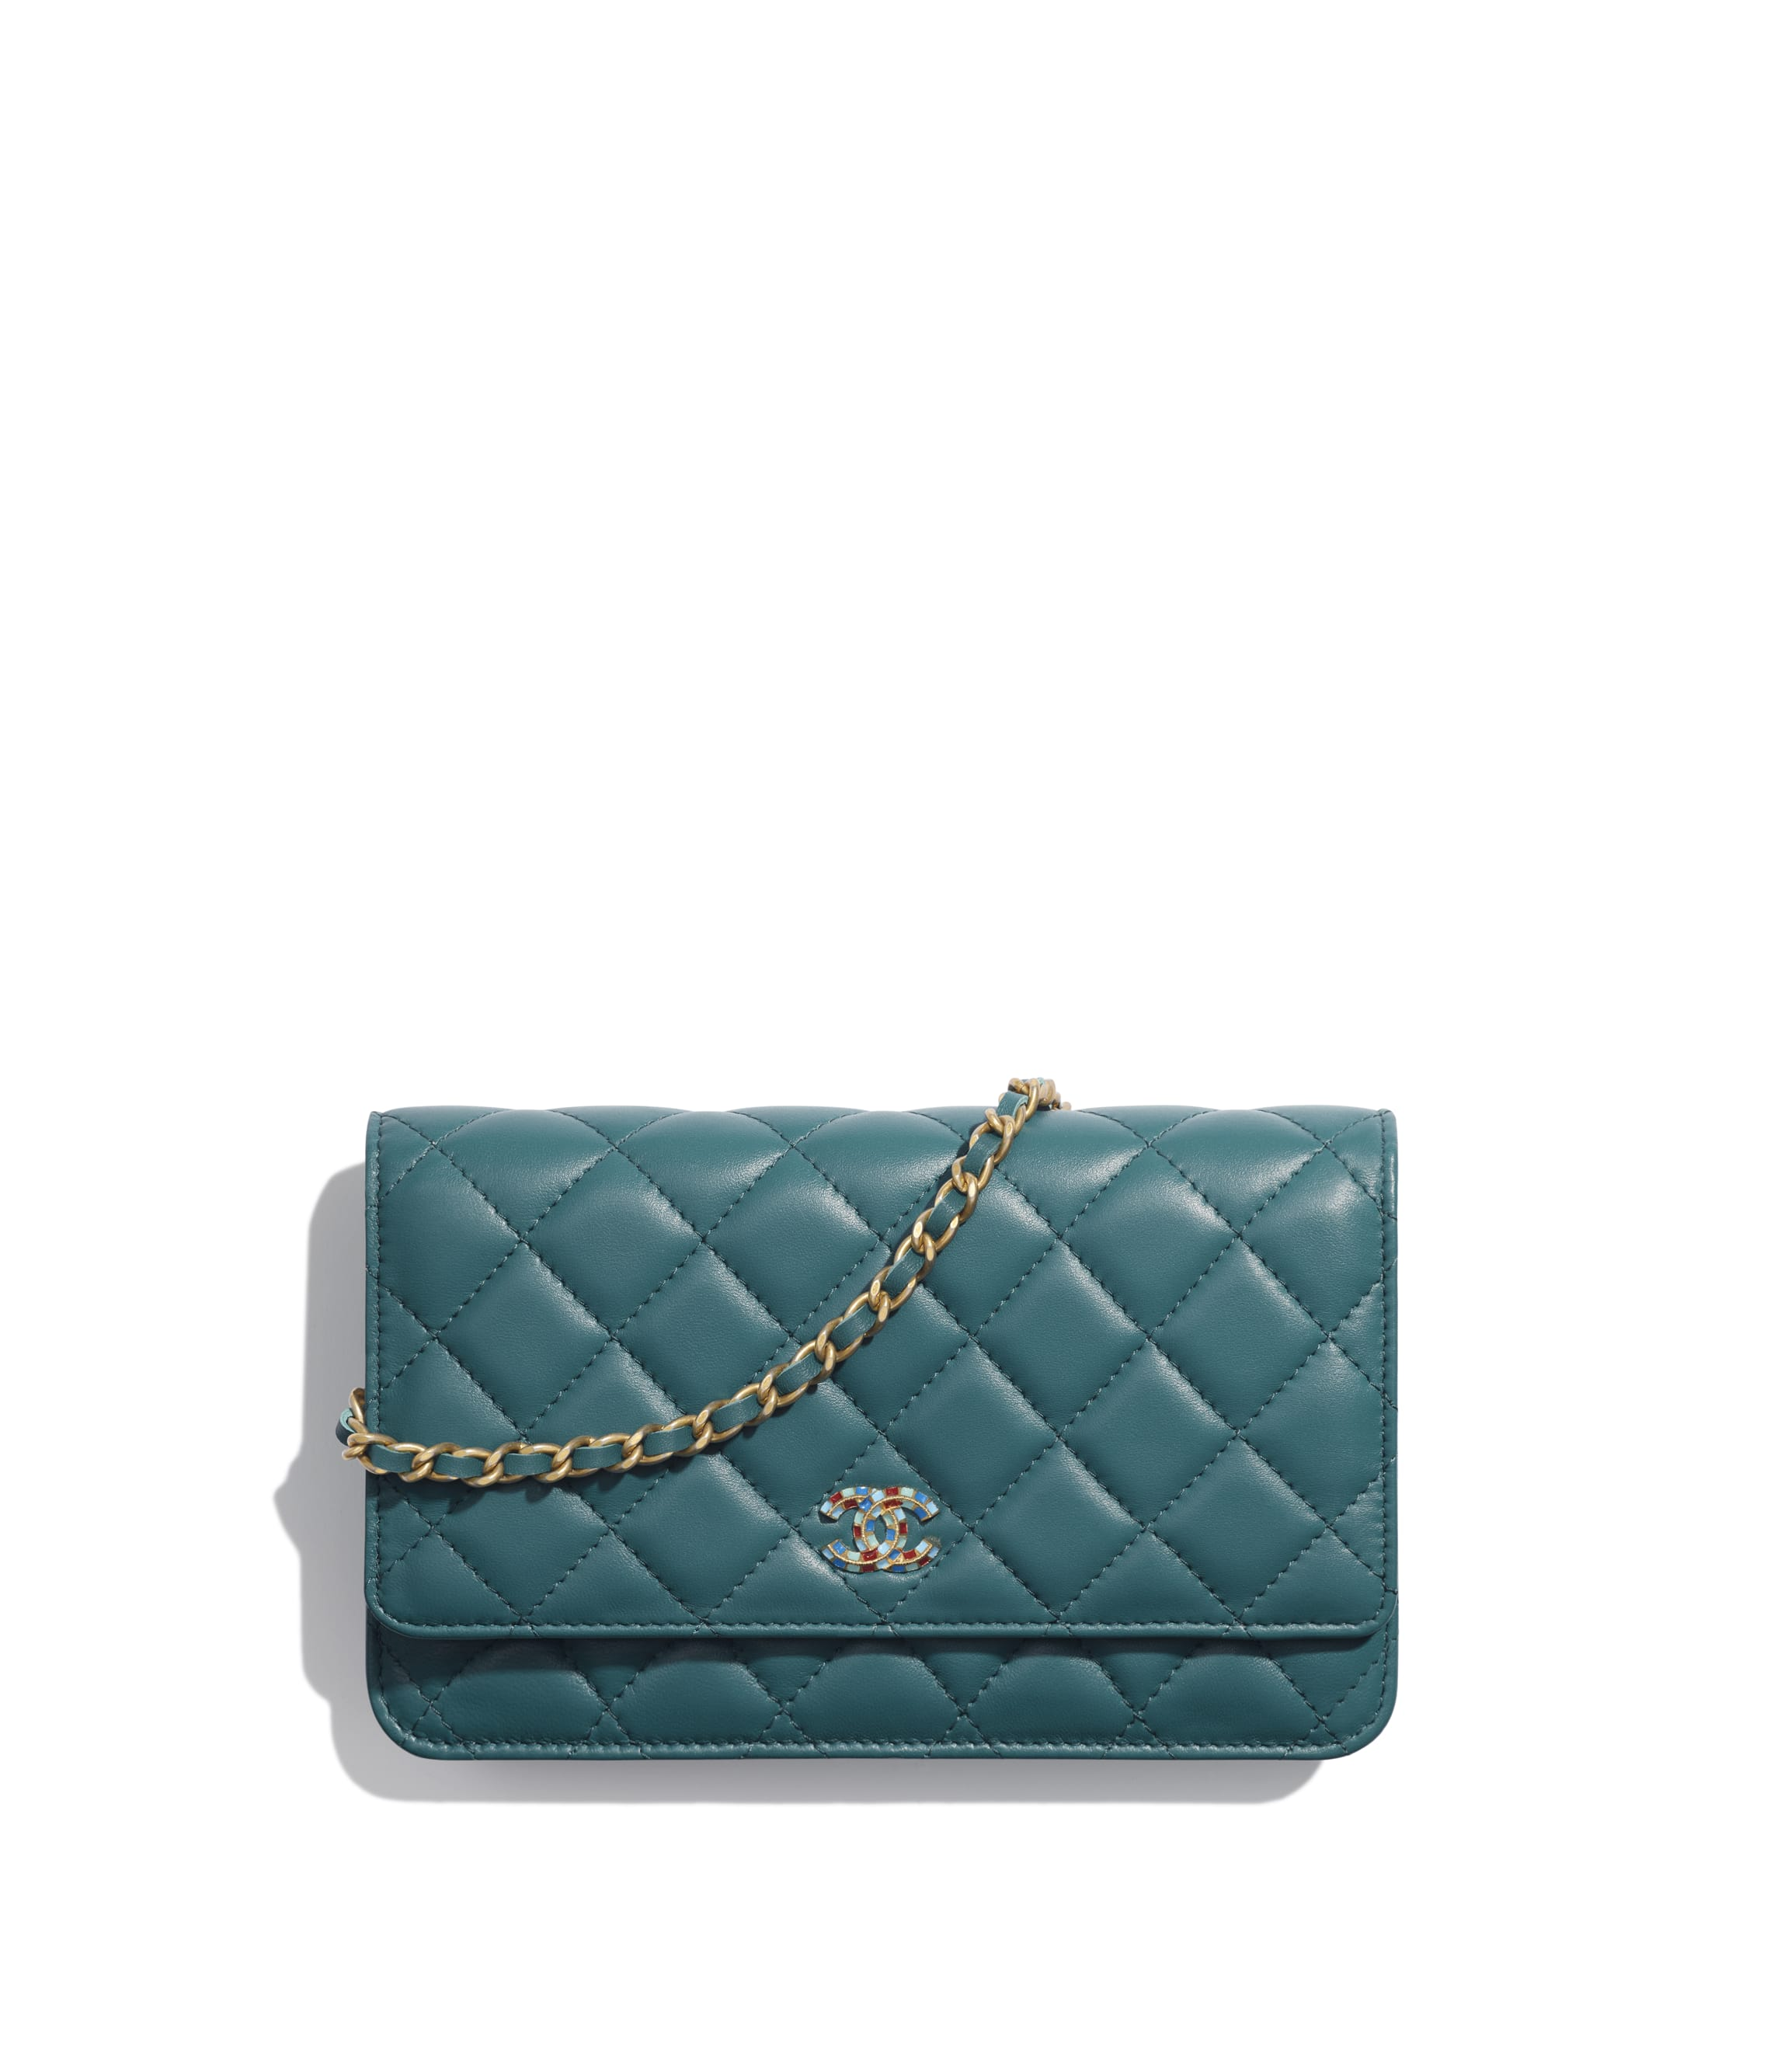 98ccf421ccea Small leather goods - CHANEL